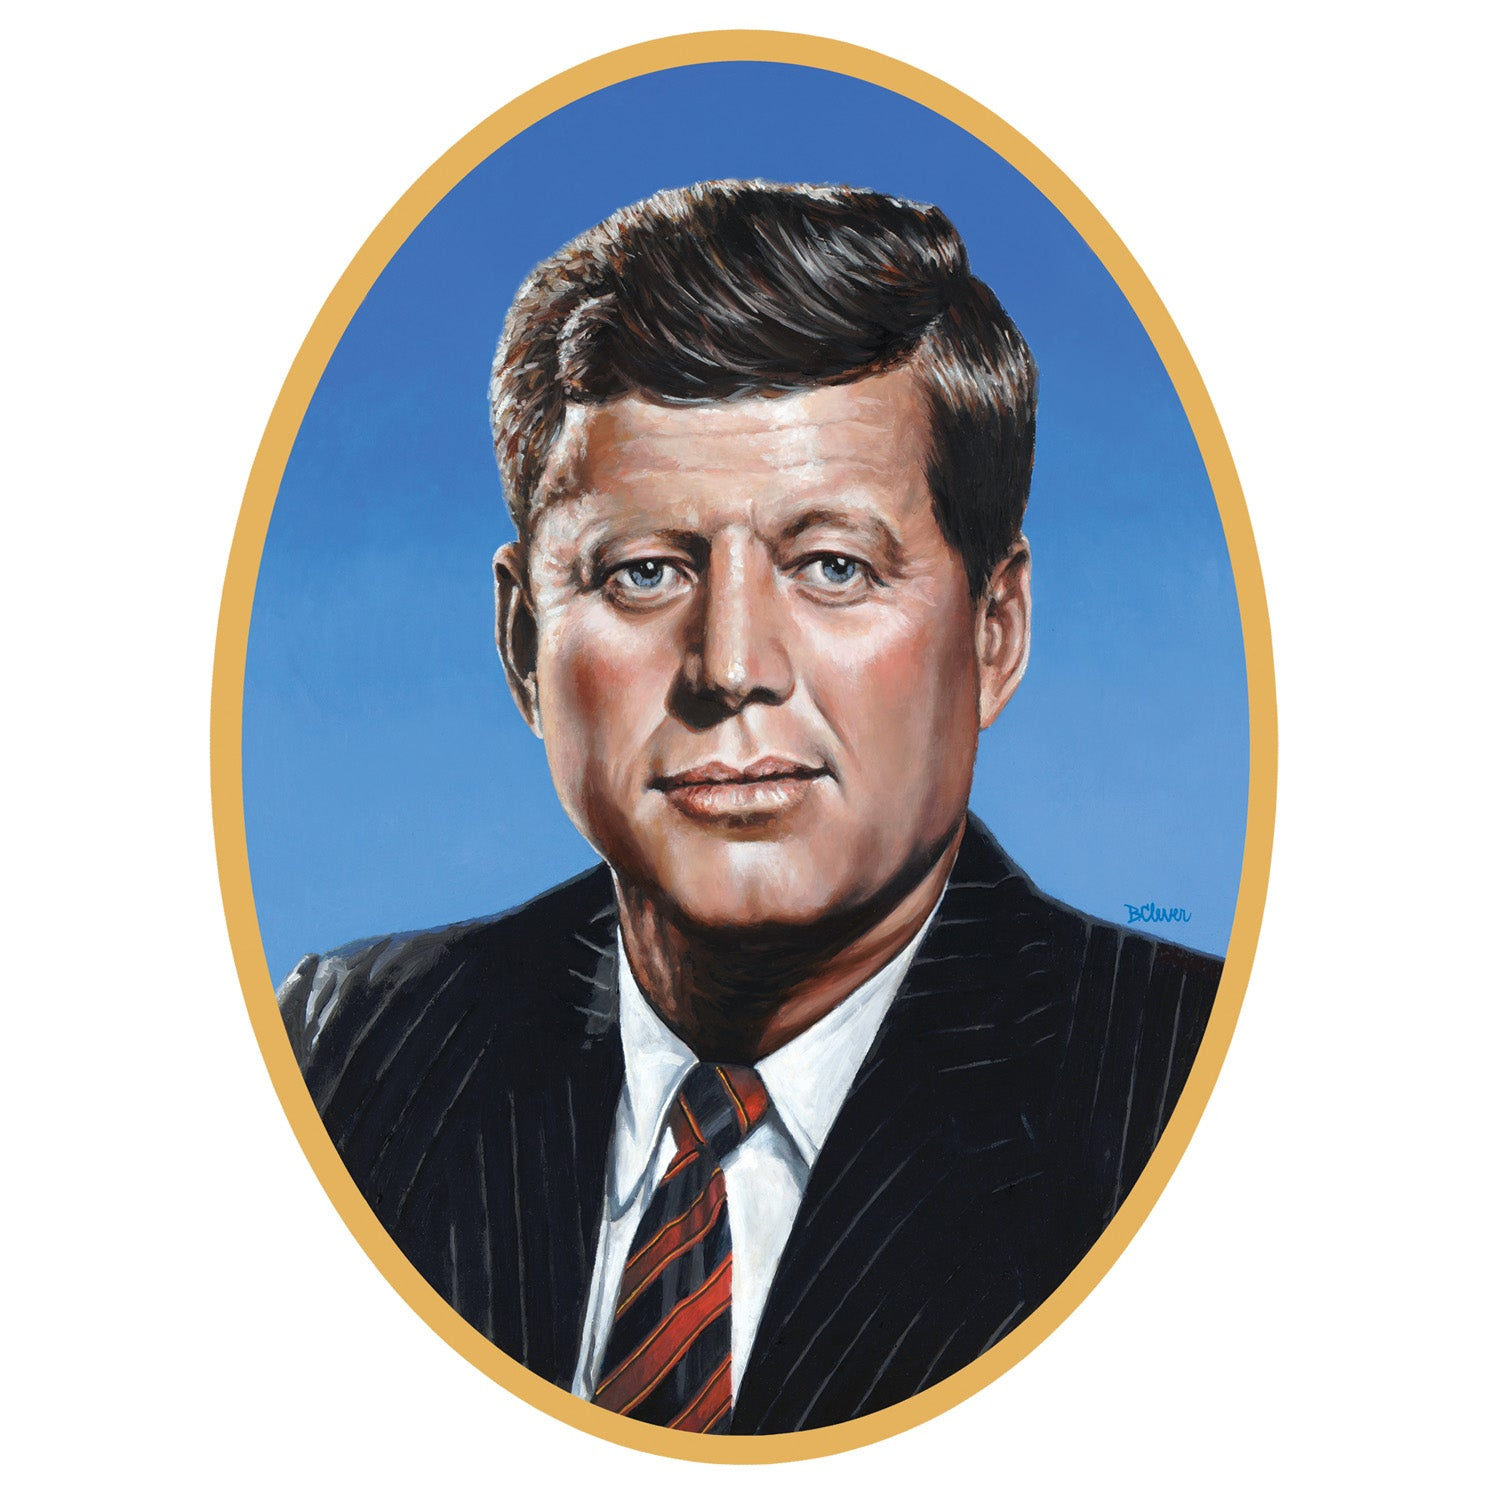 John F Kennedy Cutout by Beistle - School Awards and Supplies Decorations